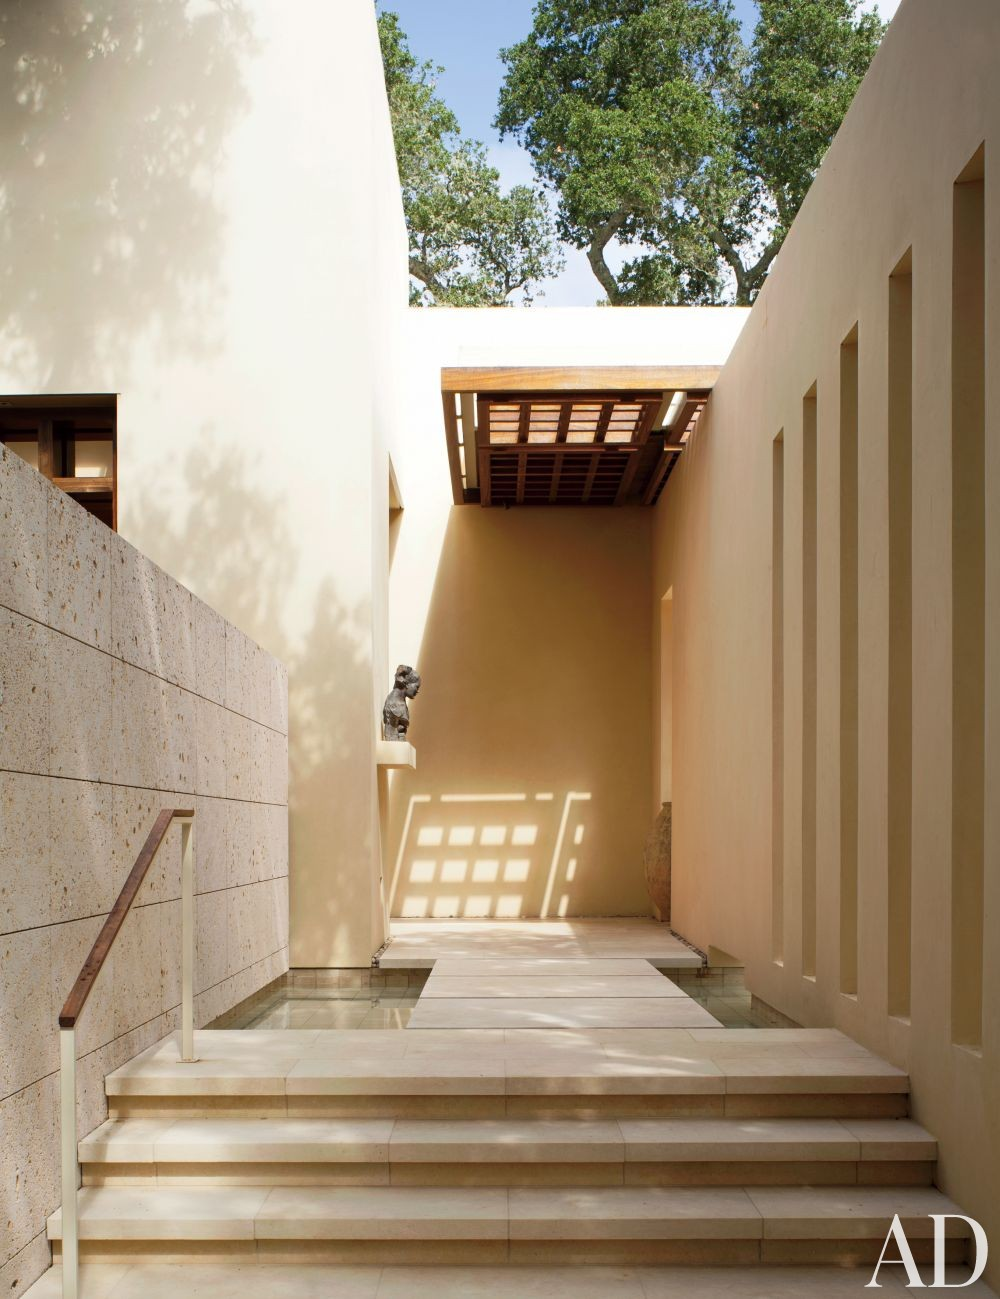 Modern Entrance Hall by April Powers and Backen, Gillam & Kroeger Architects in Woodside, California